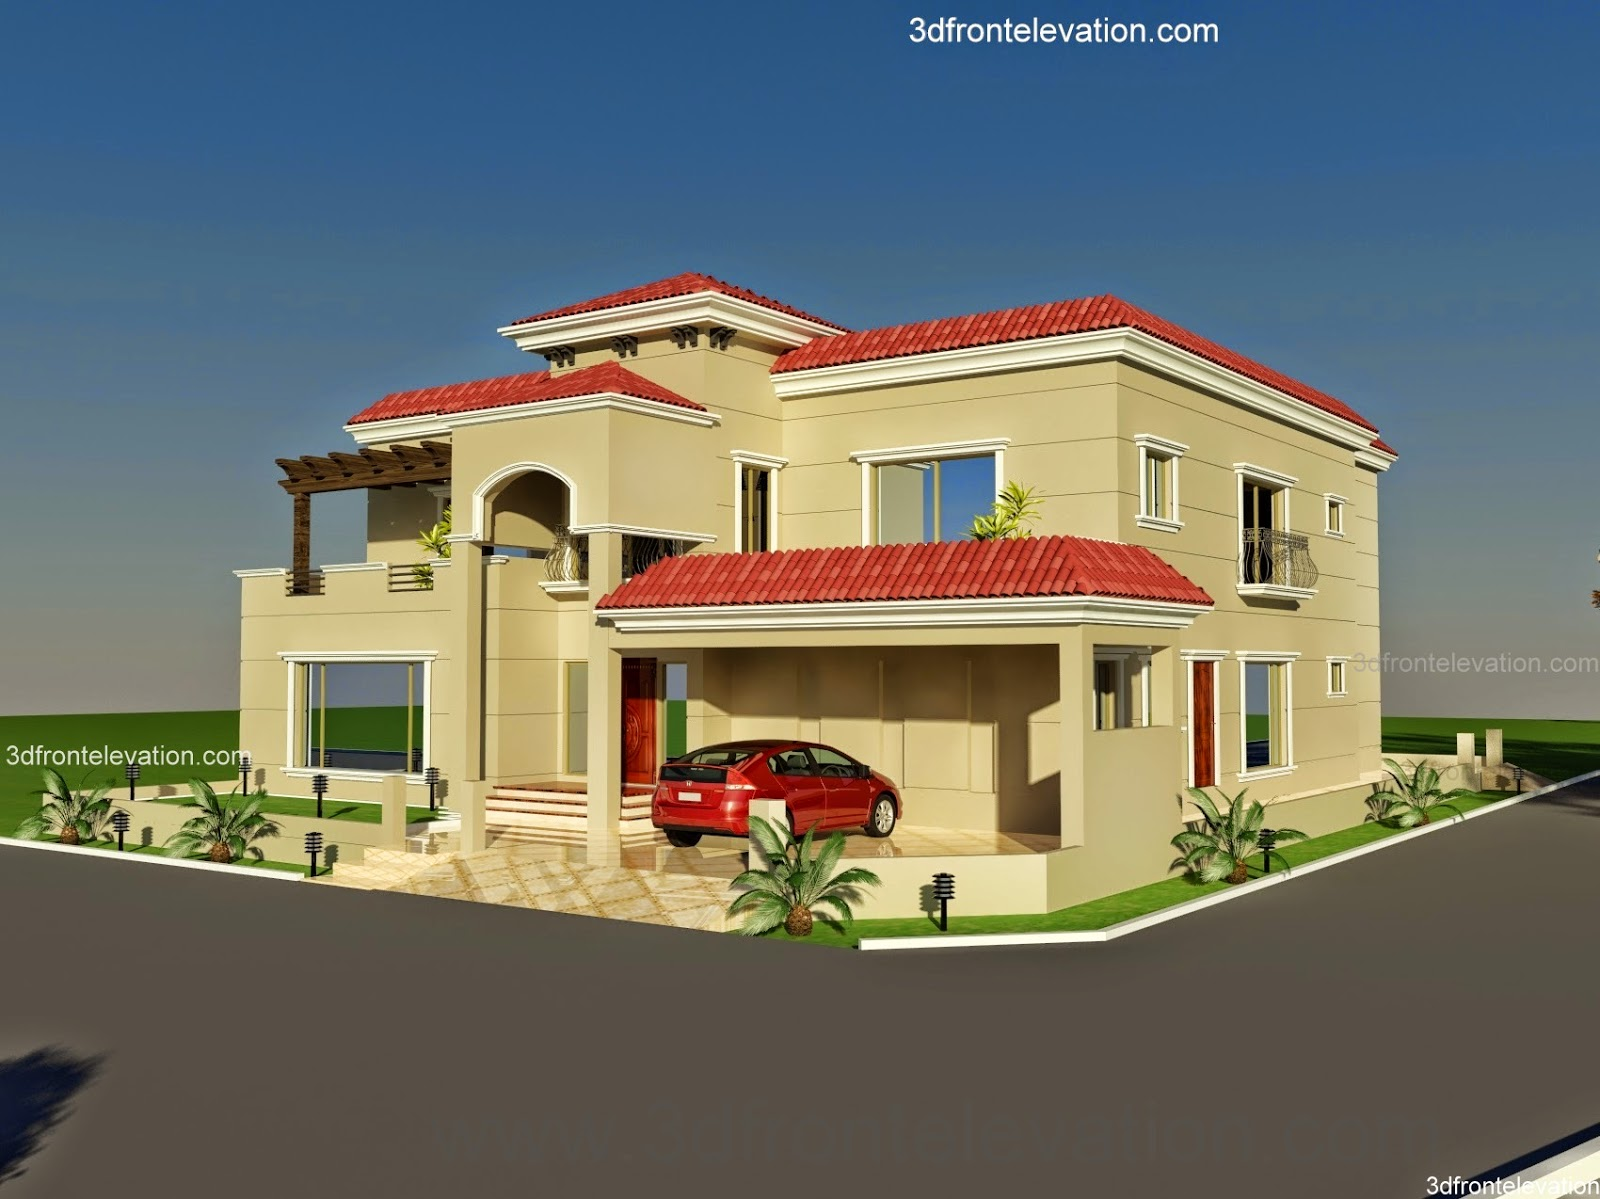 Front Elevation Of House In Punjab : D front elevation  wapda town kanal